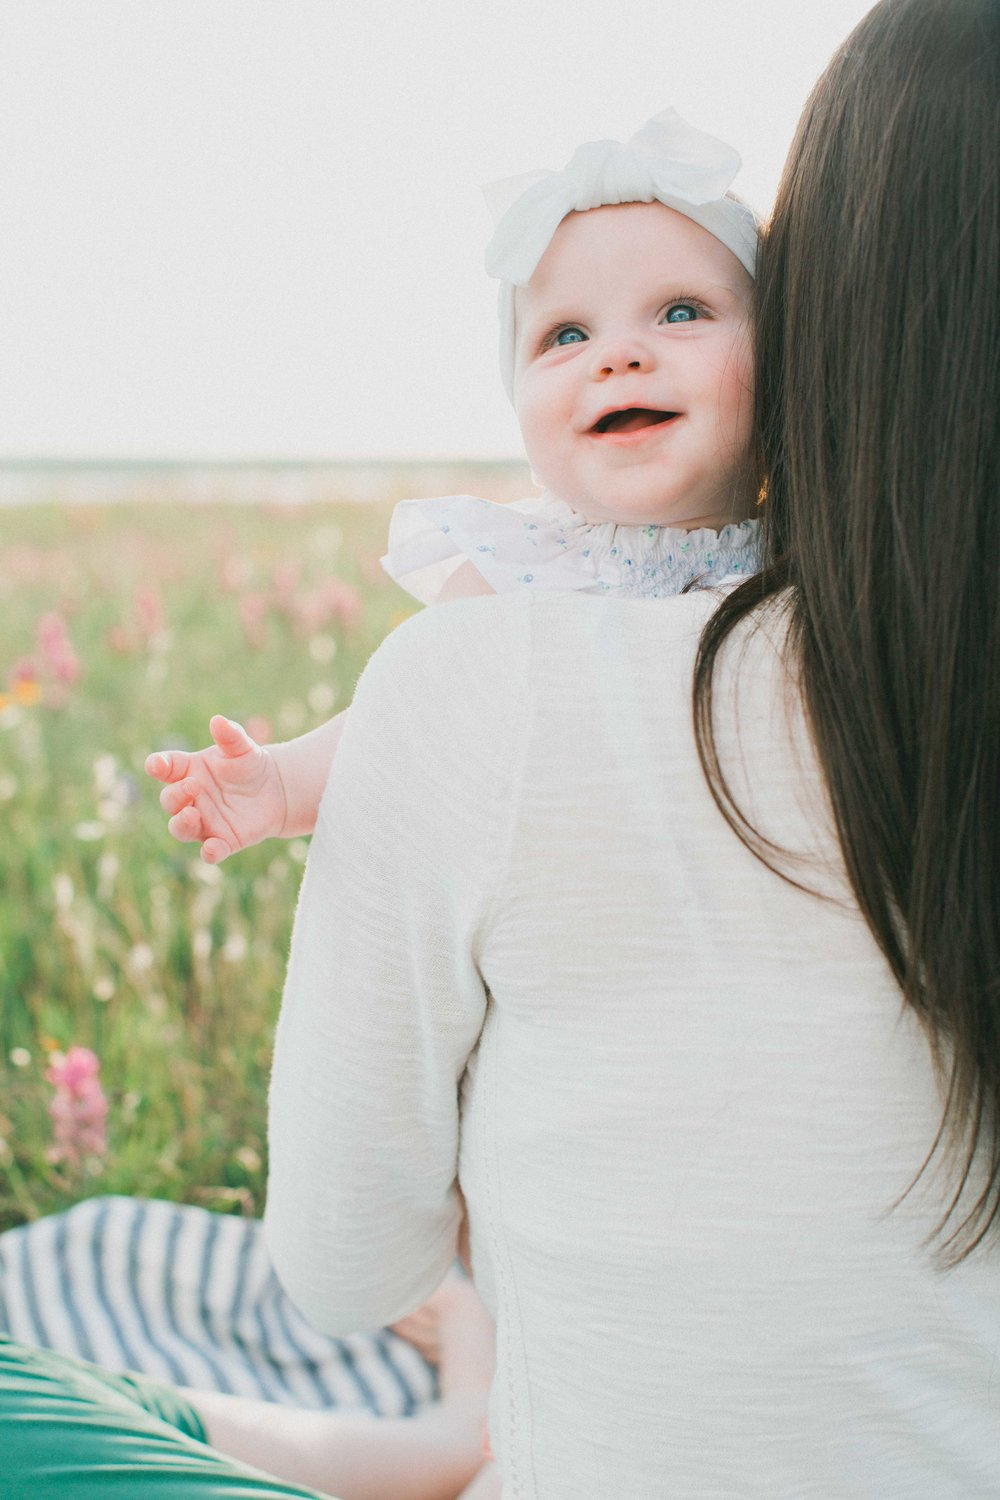 Cora Six Month Session, Milestone session Fort Worth, Fort Worth family photographer, Fort Worth wildflower family photos, Fort Worth bluebonnet family photos, Fort Worth natural light photographer, Fort Worth film photographer, Fort Worth fine art photographer, Fort Worth lifestyle photographer, Dallas bluebonnet family photos, Dallas natural light photographer, Dallas film photographer, Dallas lifestyle photographer